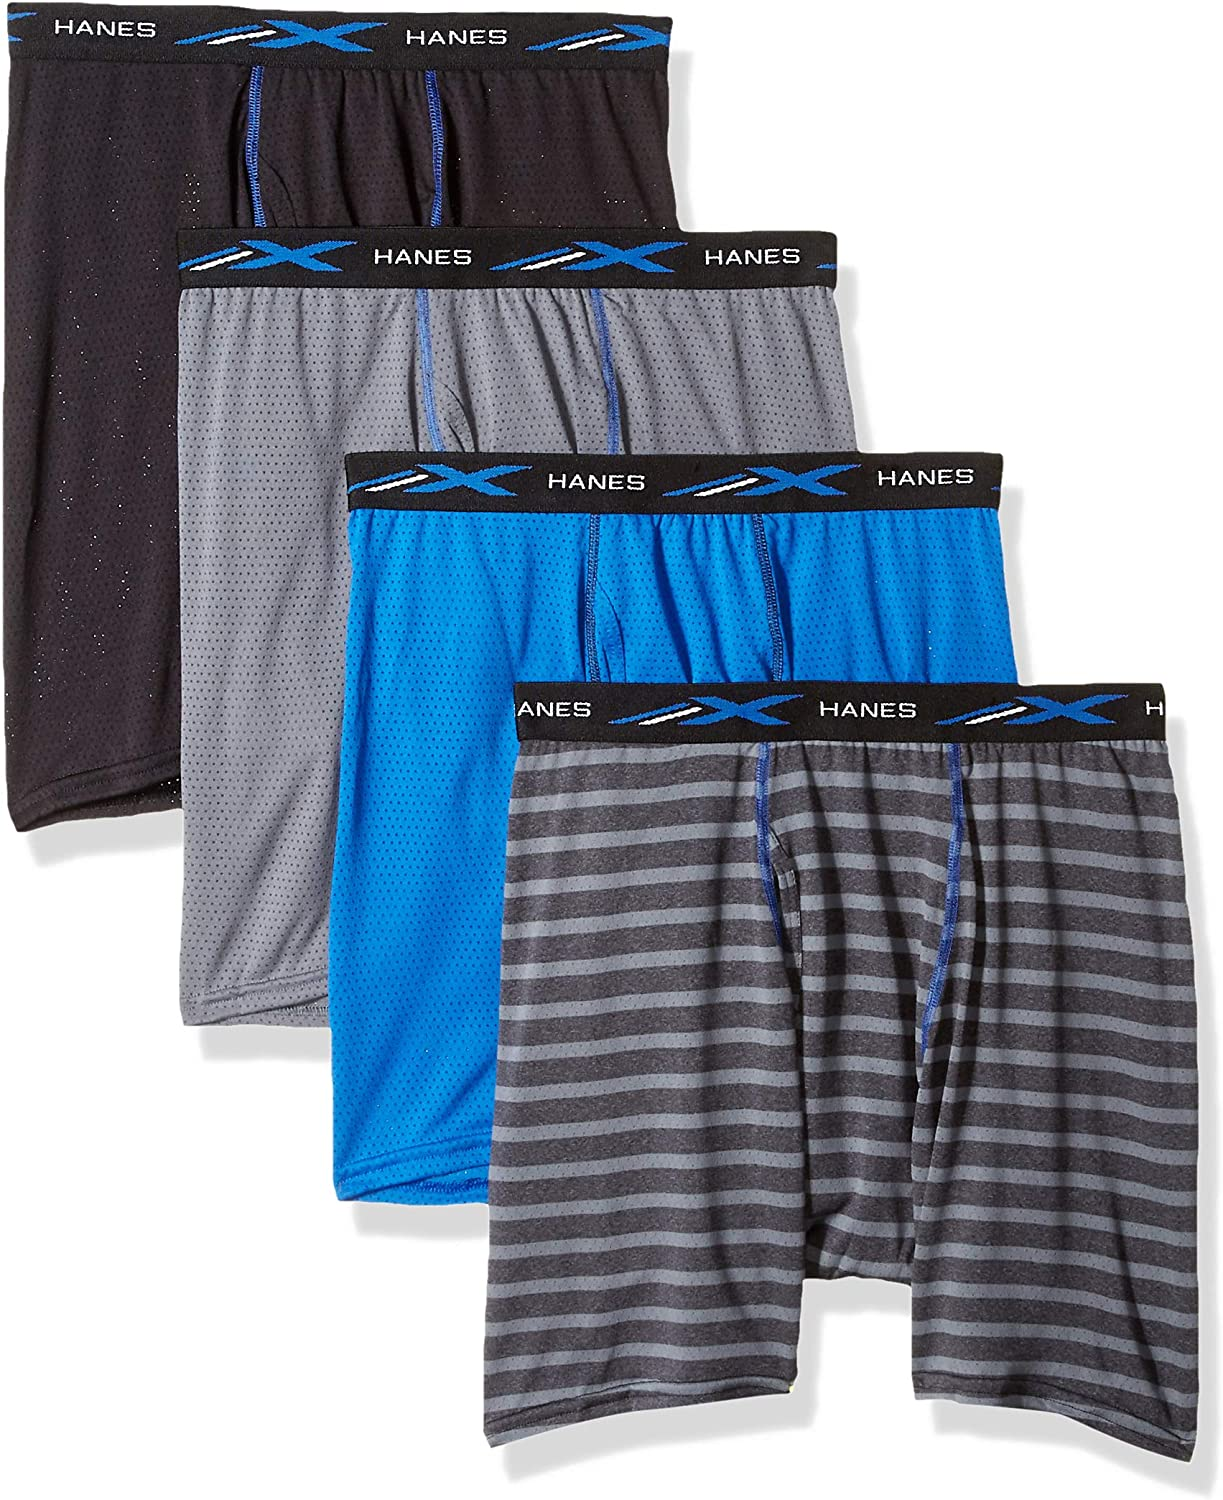 Hanes Boxer Briefs 4-Pack X-Temp Mesh Performance Lightweight Wicking Tag-free